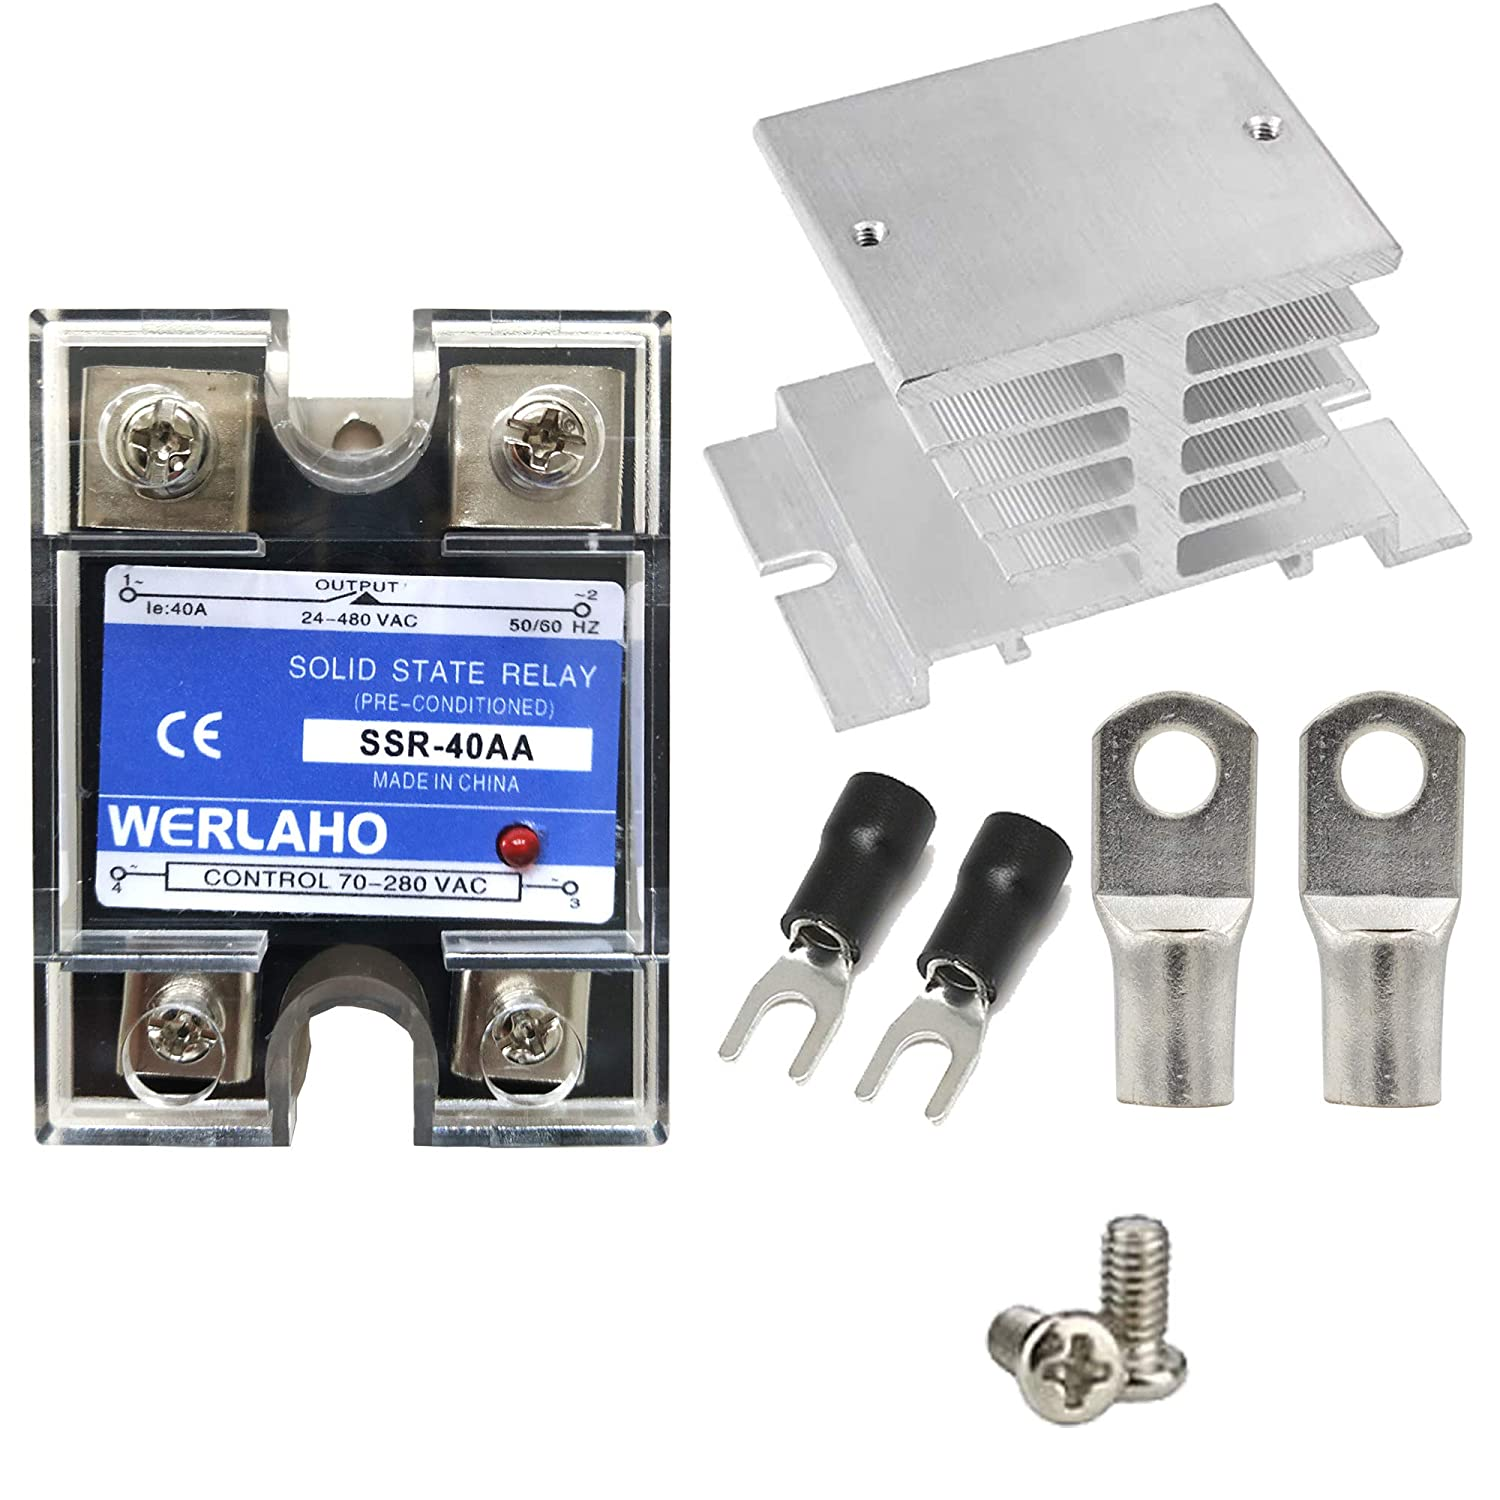 WERLAHO AC Solid State Relay 110 Popular brand SSR 40A Volt Some reservation wit to